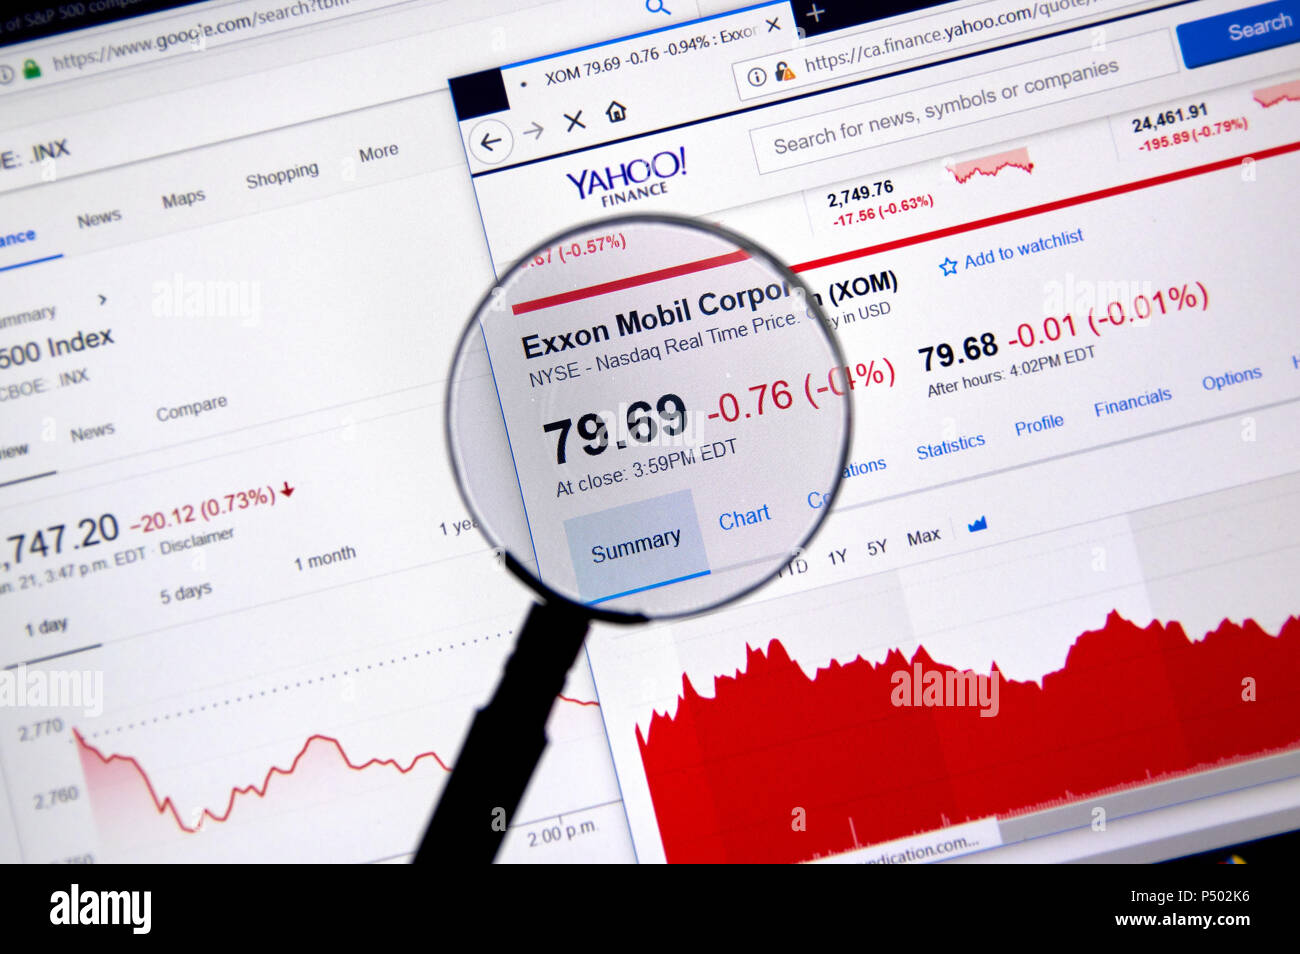 MONTREAL, CANADA - JUNE 22, 2018: Exxon Mobile Corporation XON ticker with shares price and charts under magnifying glass on Yahoo Finance. - Stock Image